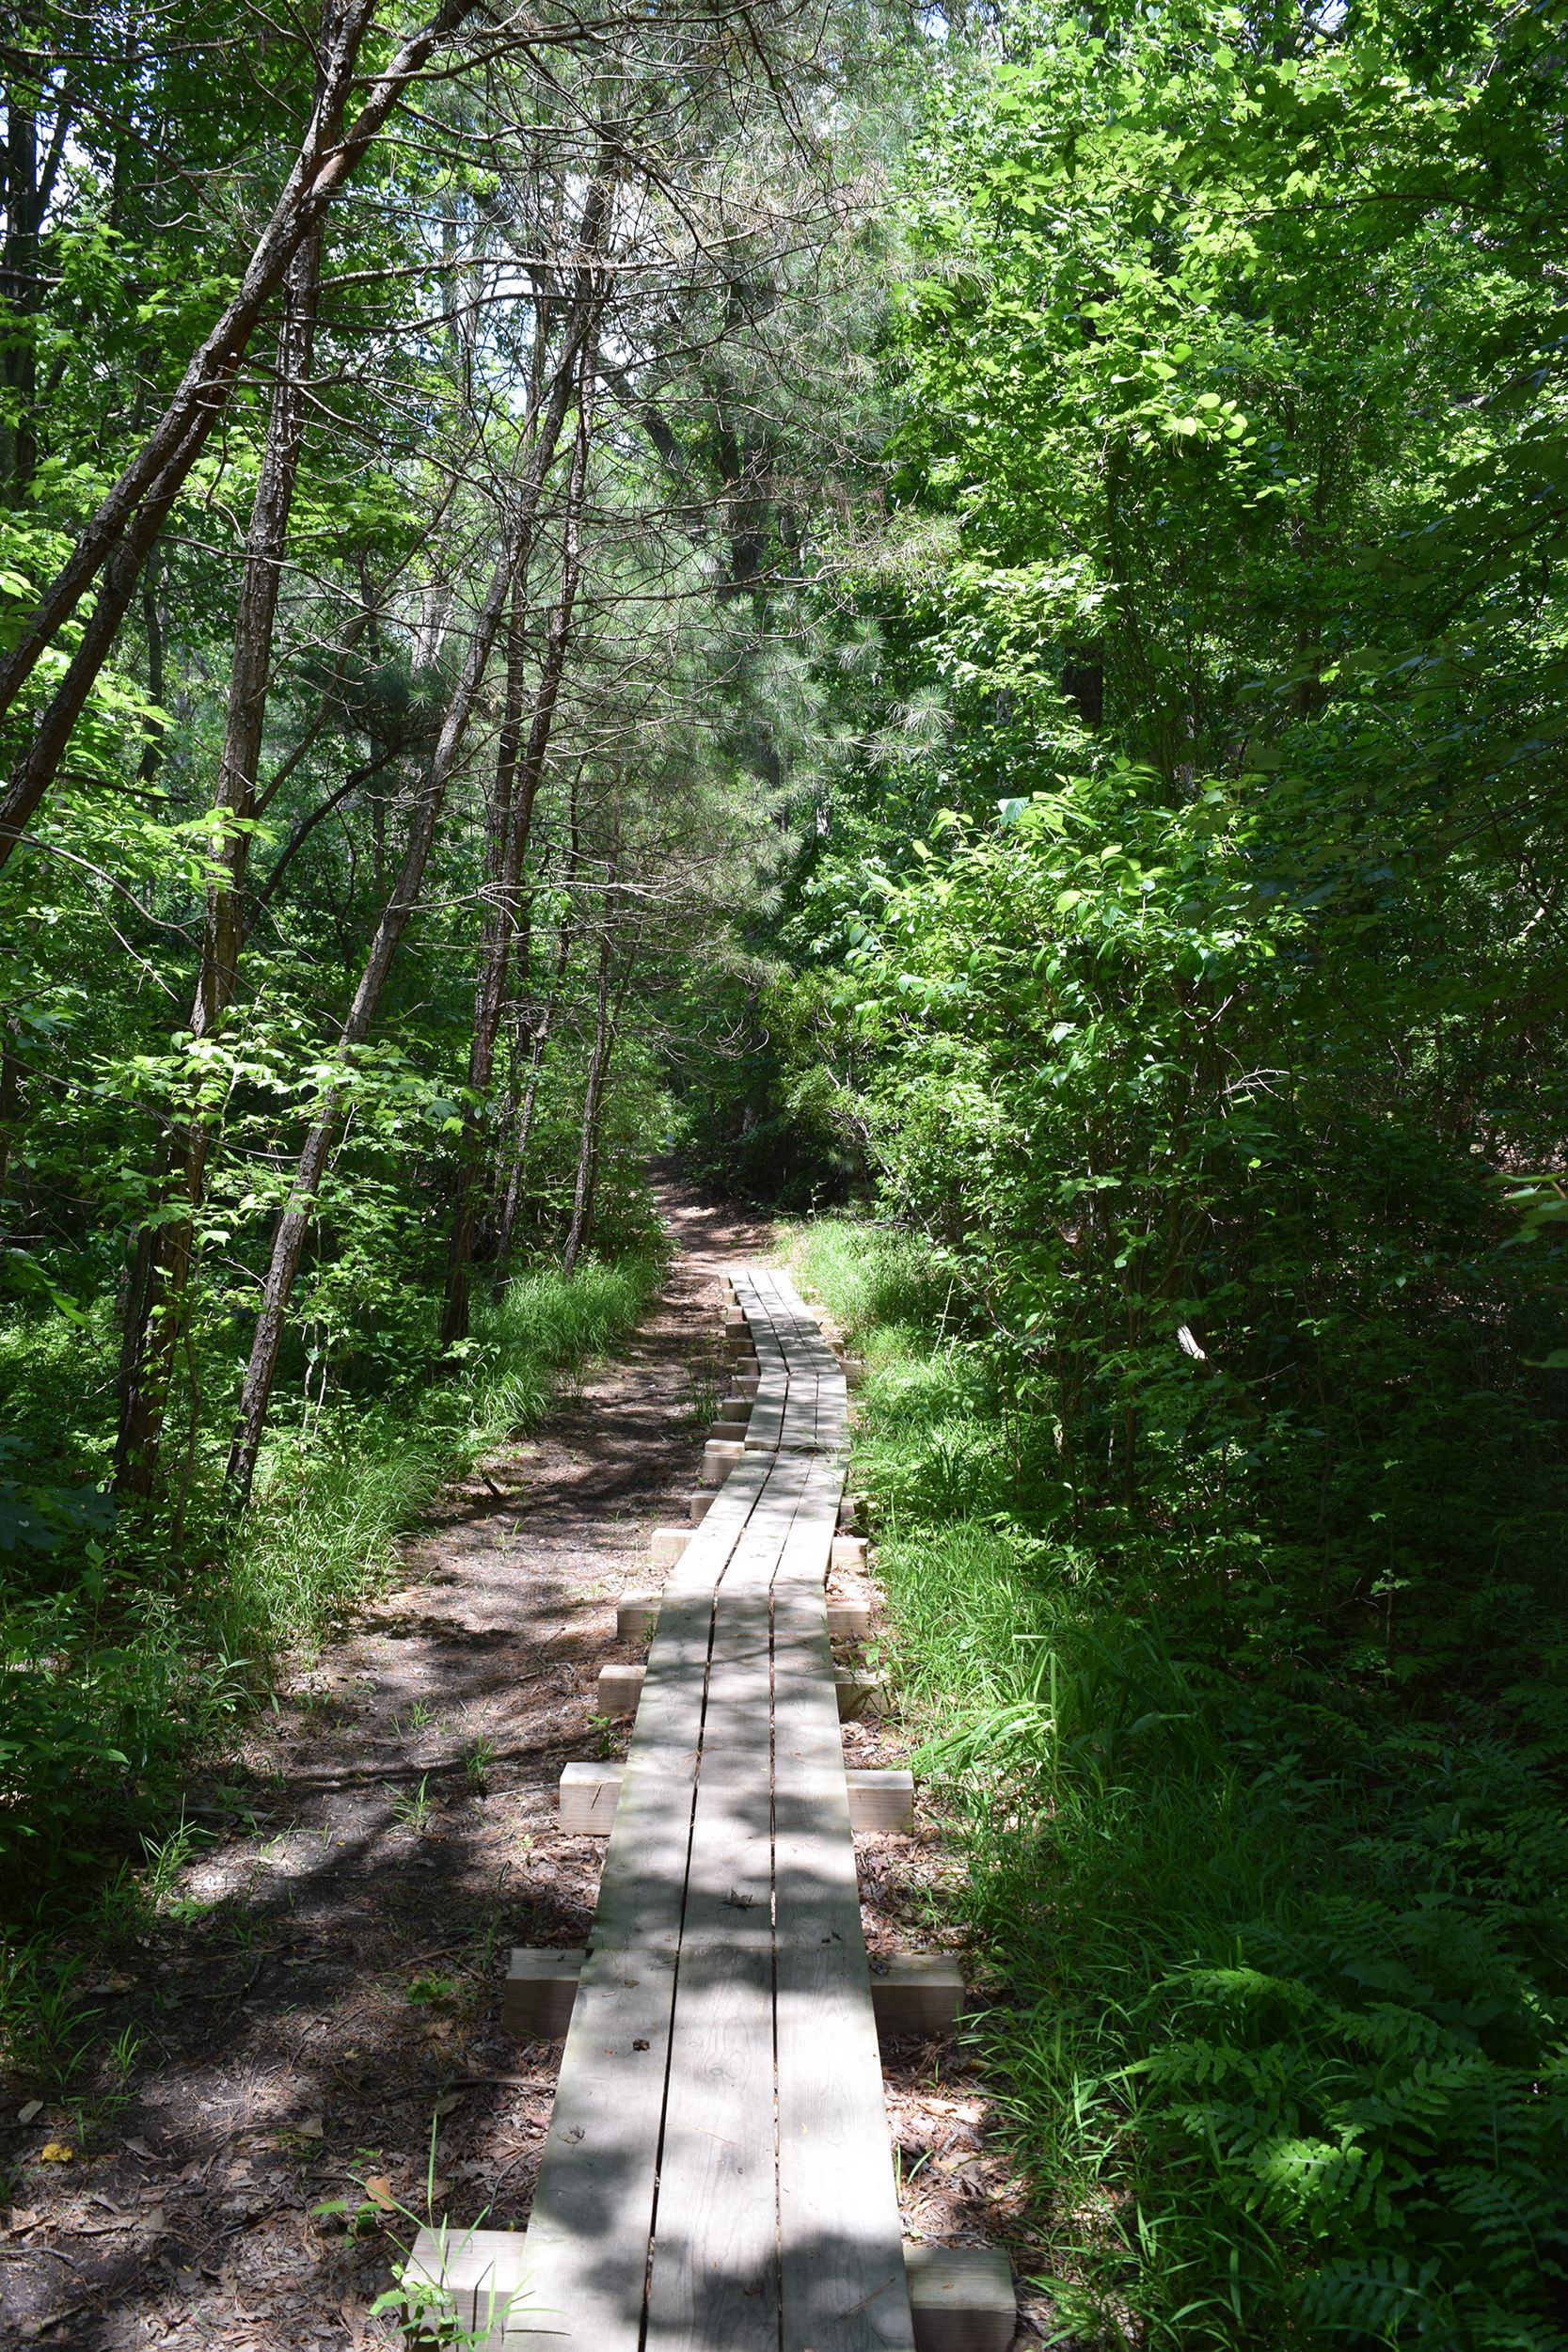 A raised wooden trail stretches into a forest. The trail is three boards wide. The trees bend over the trail shading it from the summer sun.